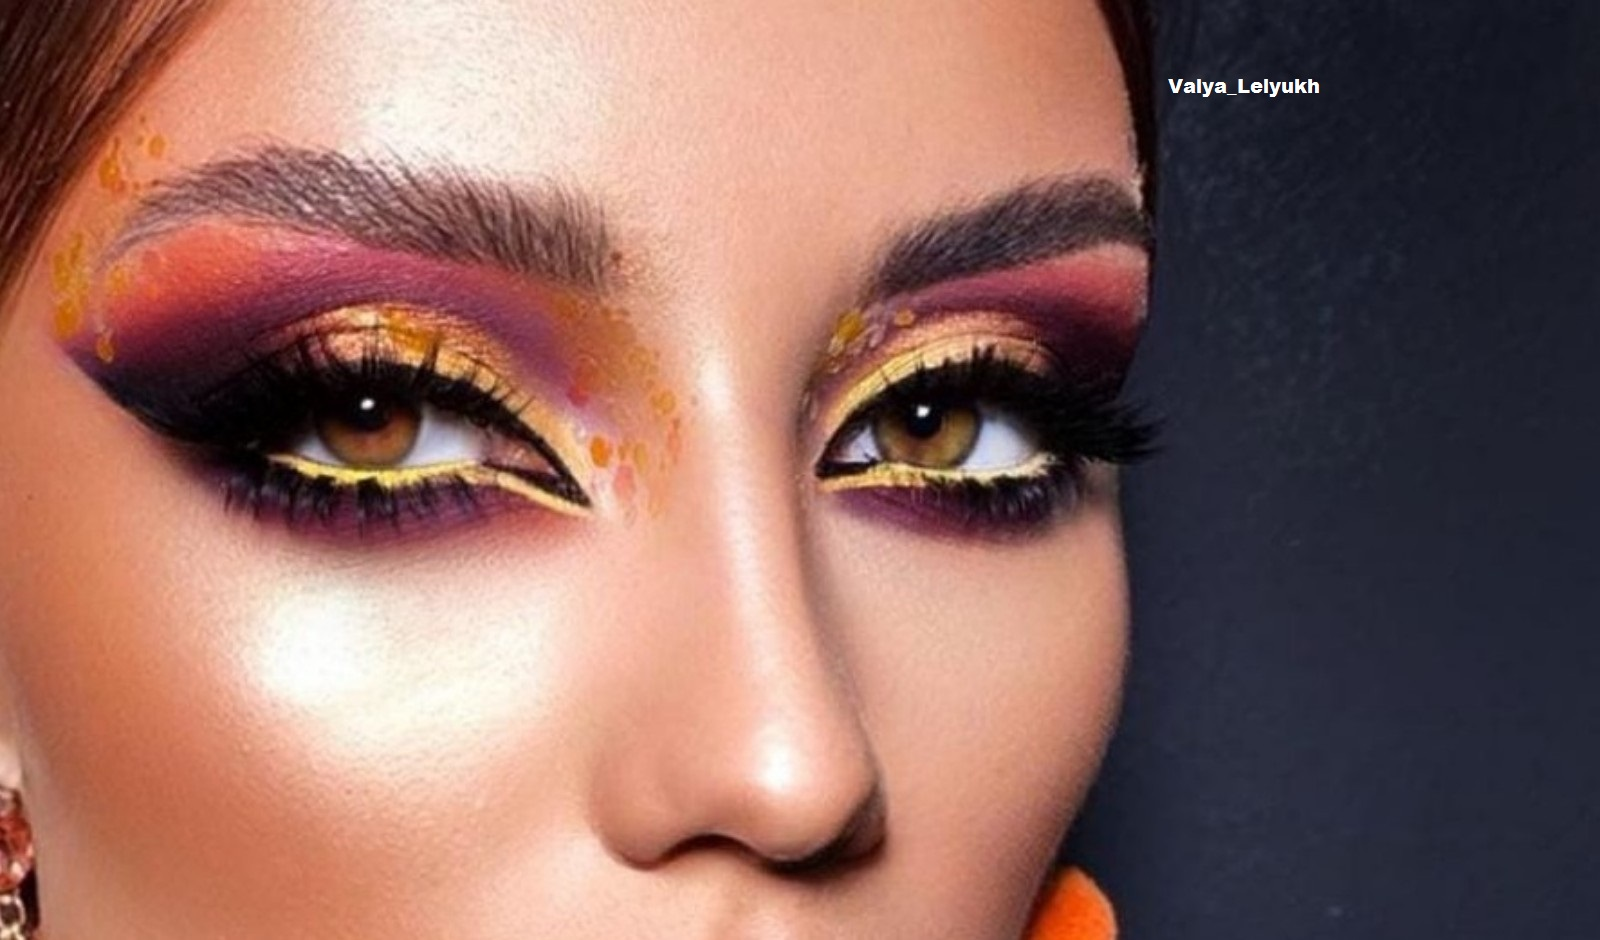 Get Inspired By Fall With These Pumpkin Spice Makeup Looks 6